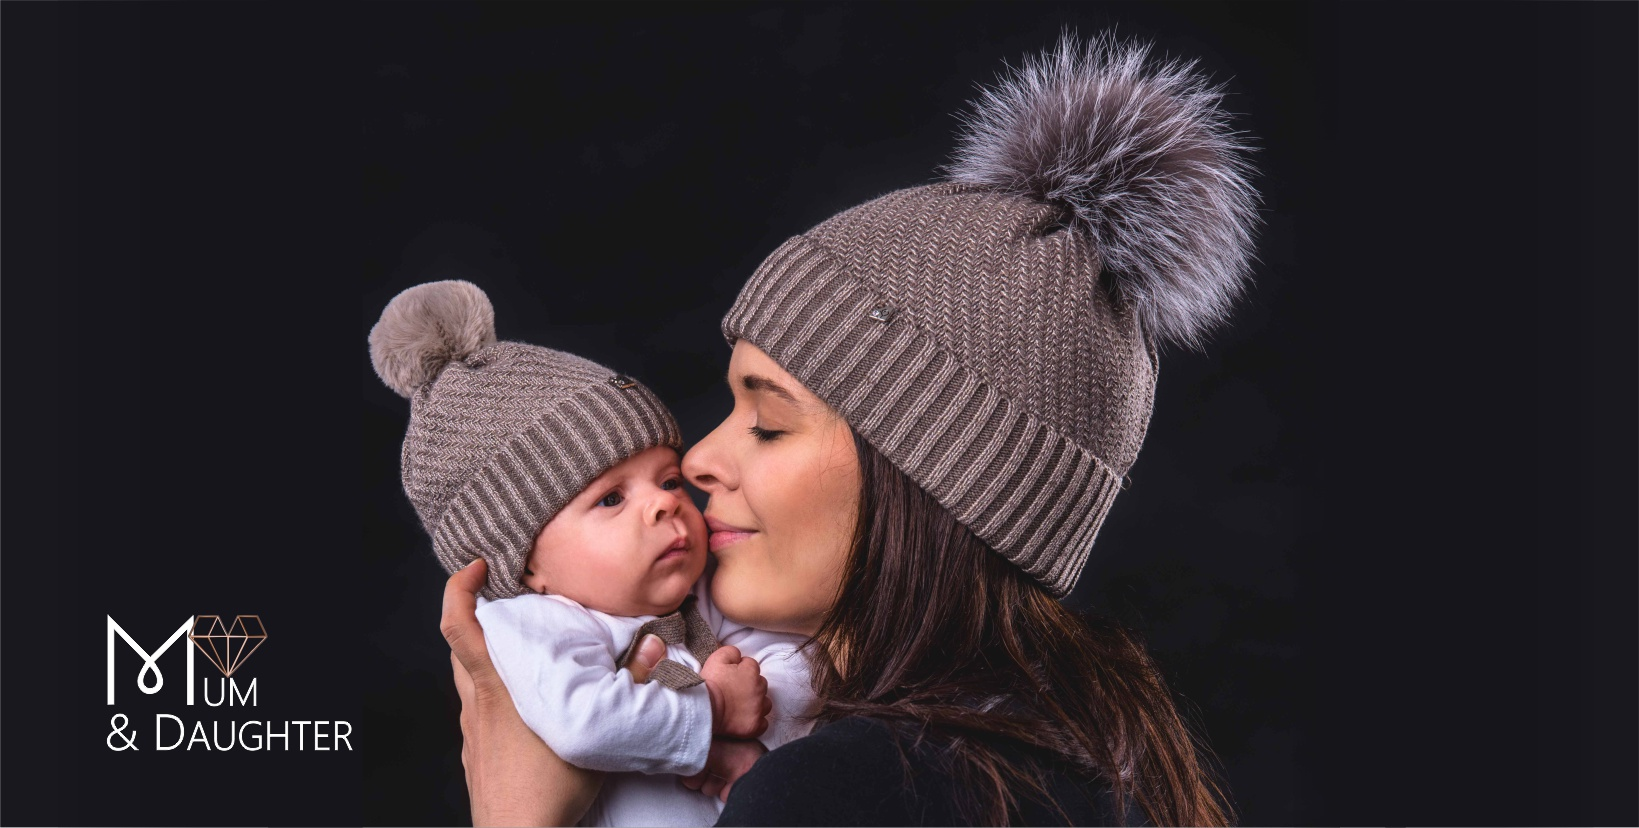 mum-and-daughter-collection-jamiks